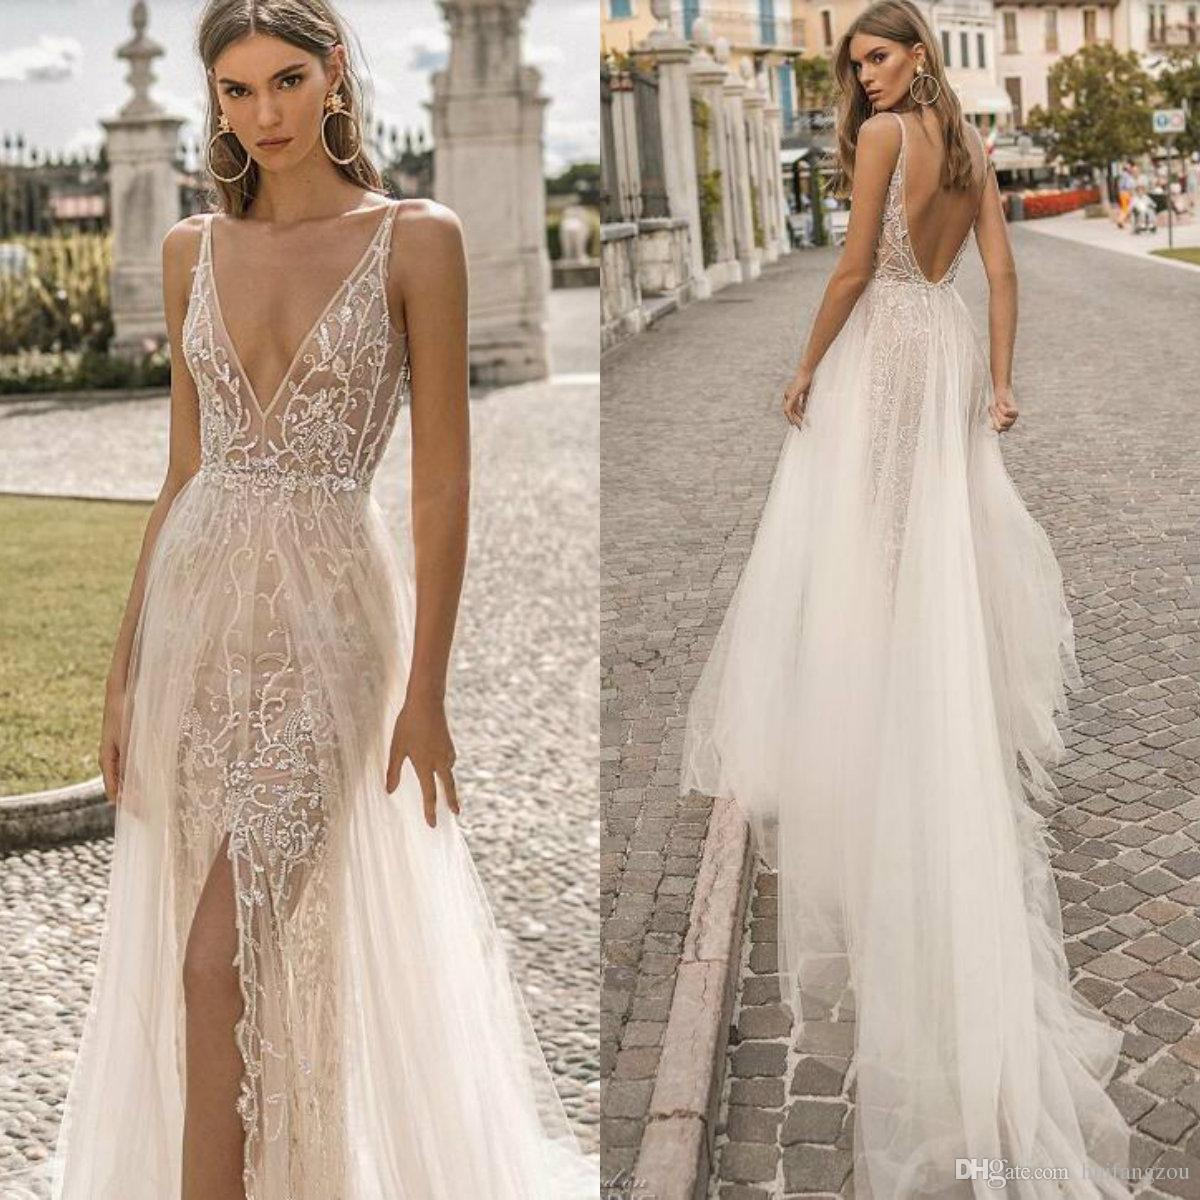 Discount Berta 2019 Beach Wedding Dresses Illusion V Neck Lace